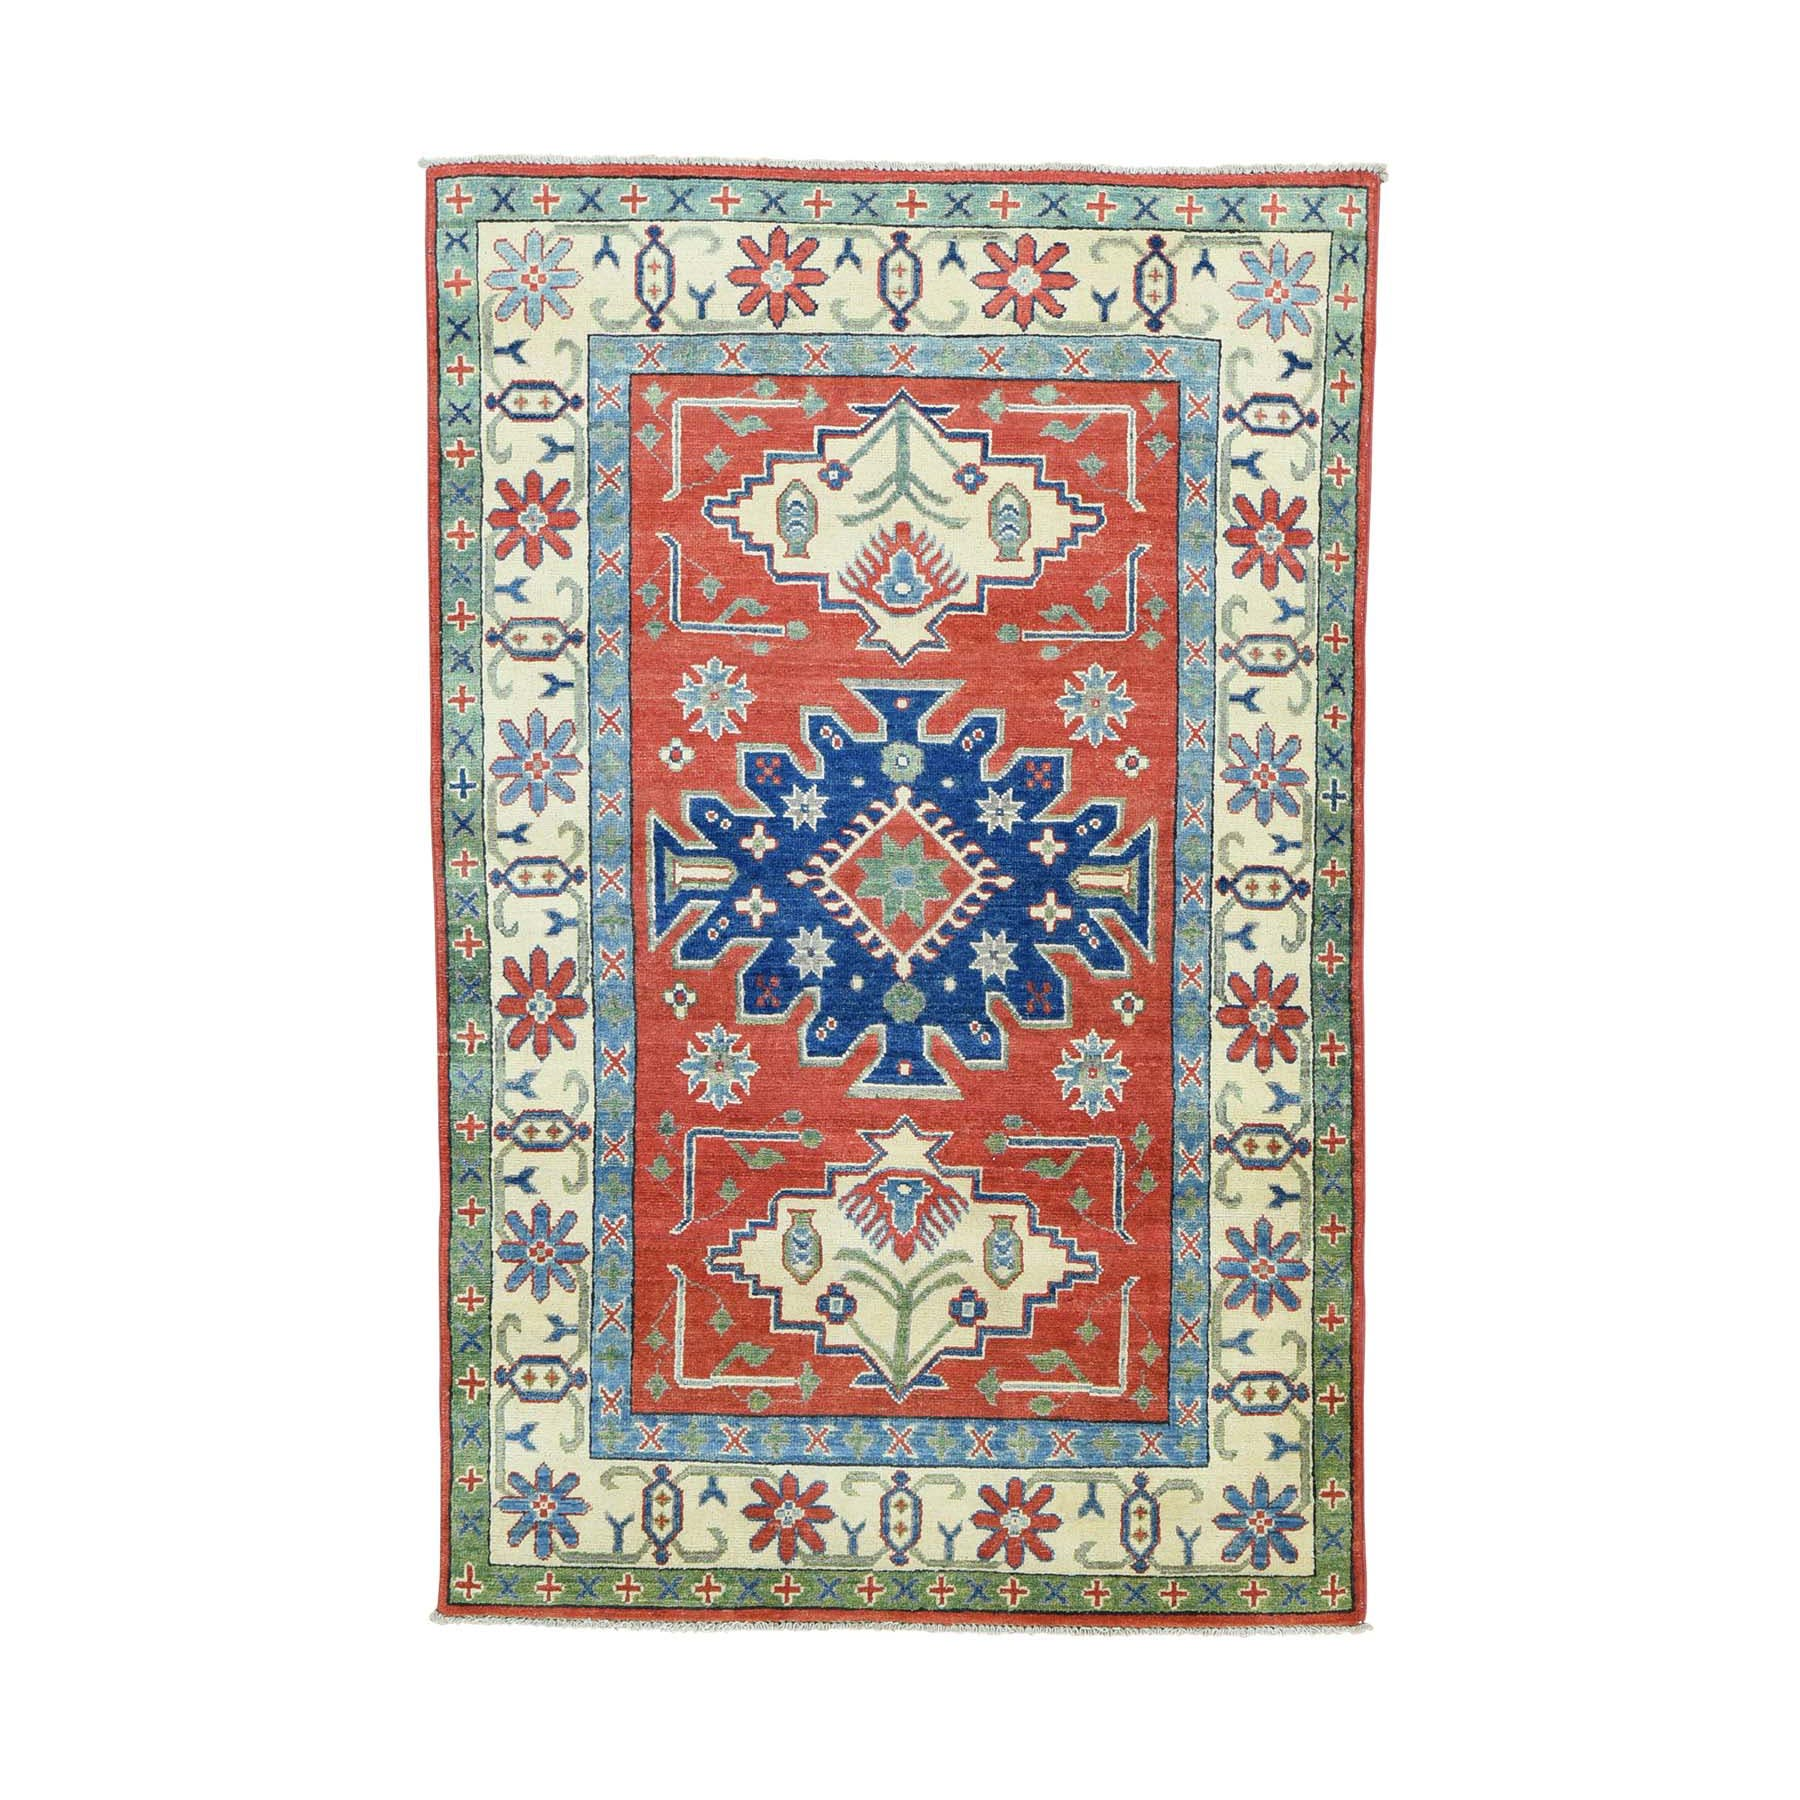 Buy Unique One Of A Kind Area Rugs Online At Overstock Com